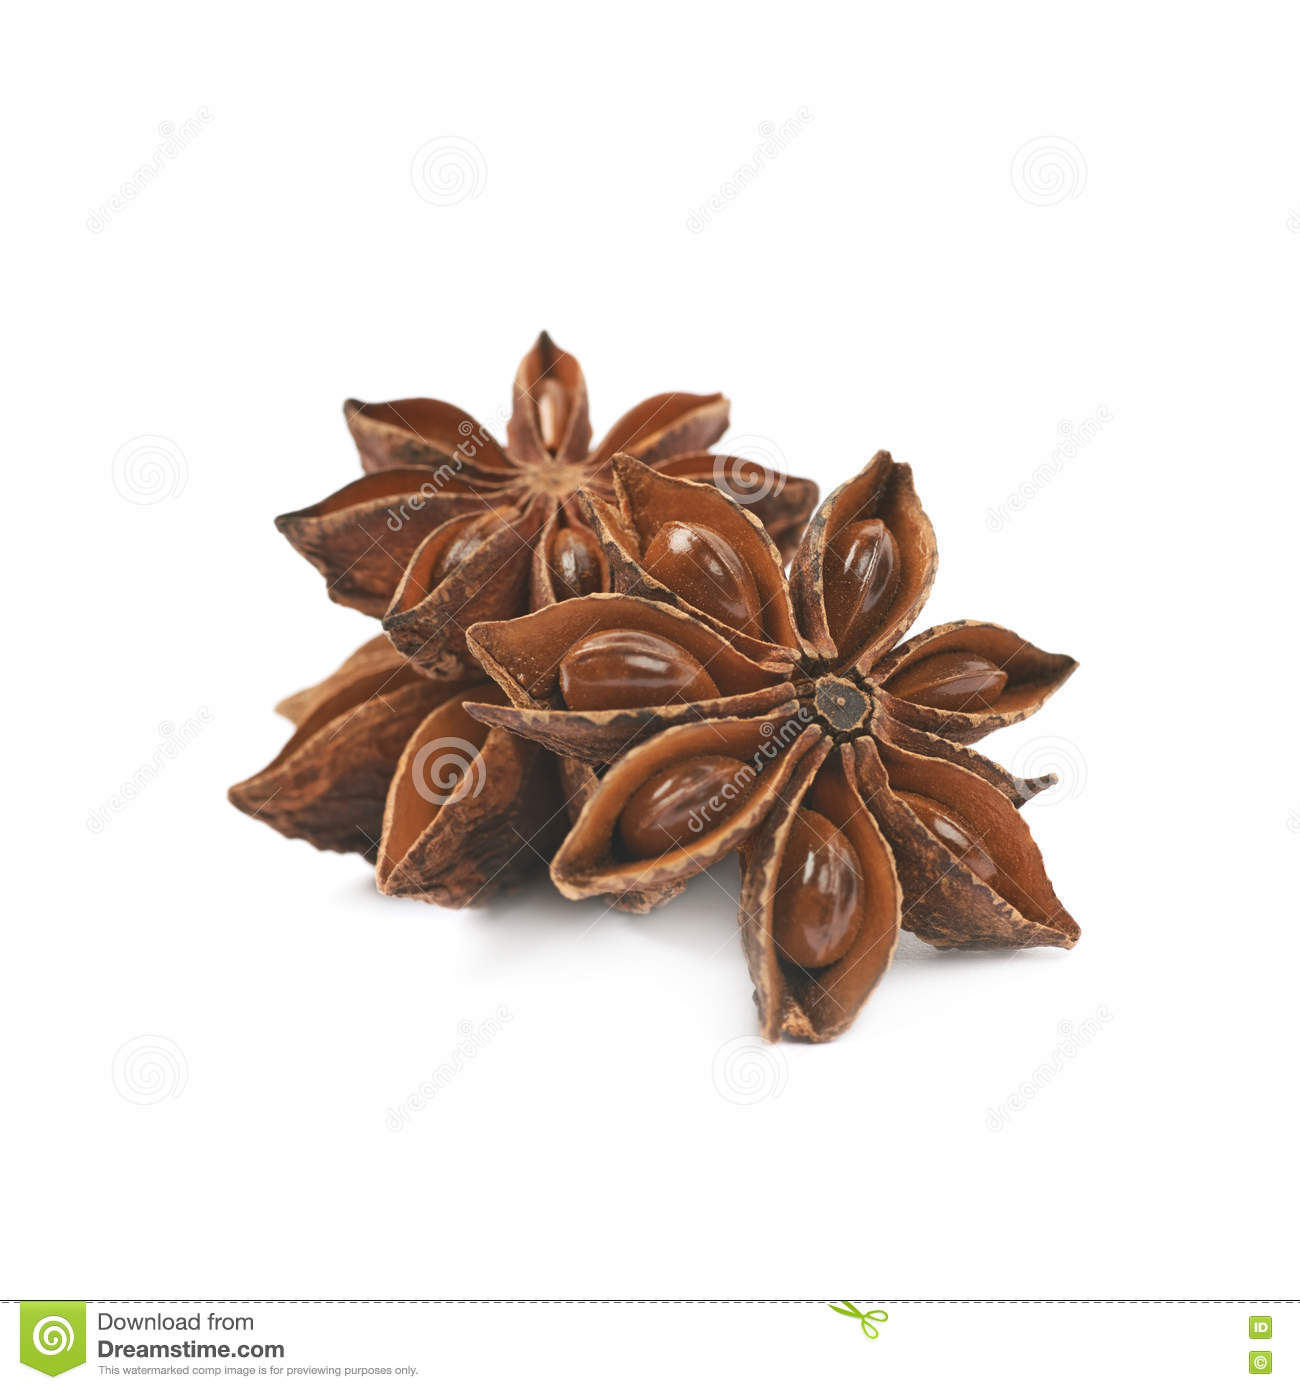 Chinese Star Anise Seed Isolated Stock Photo.